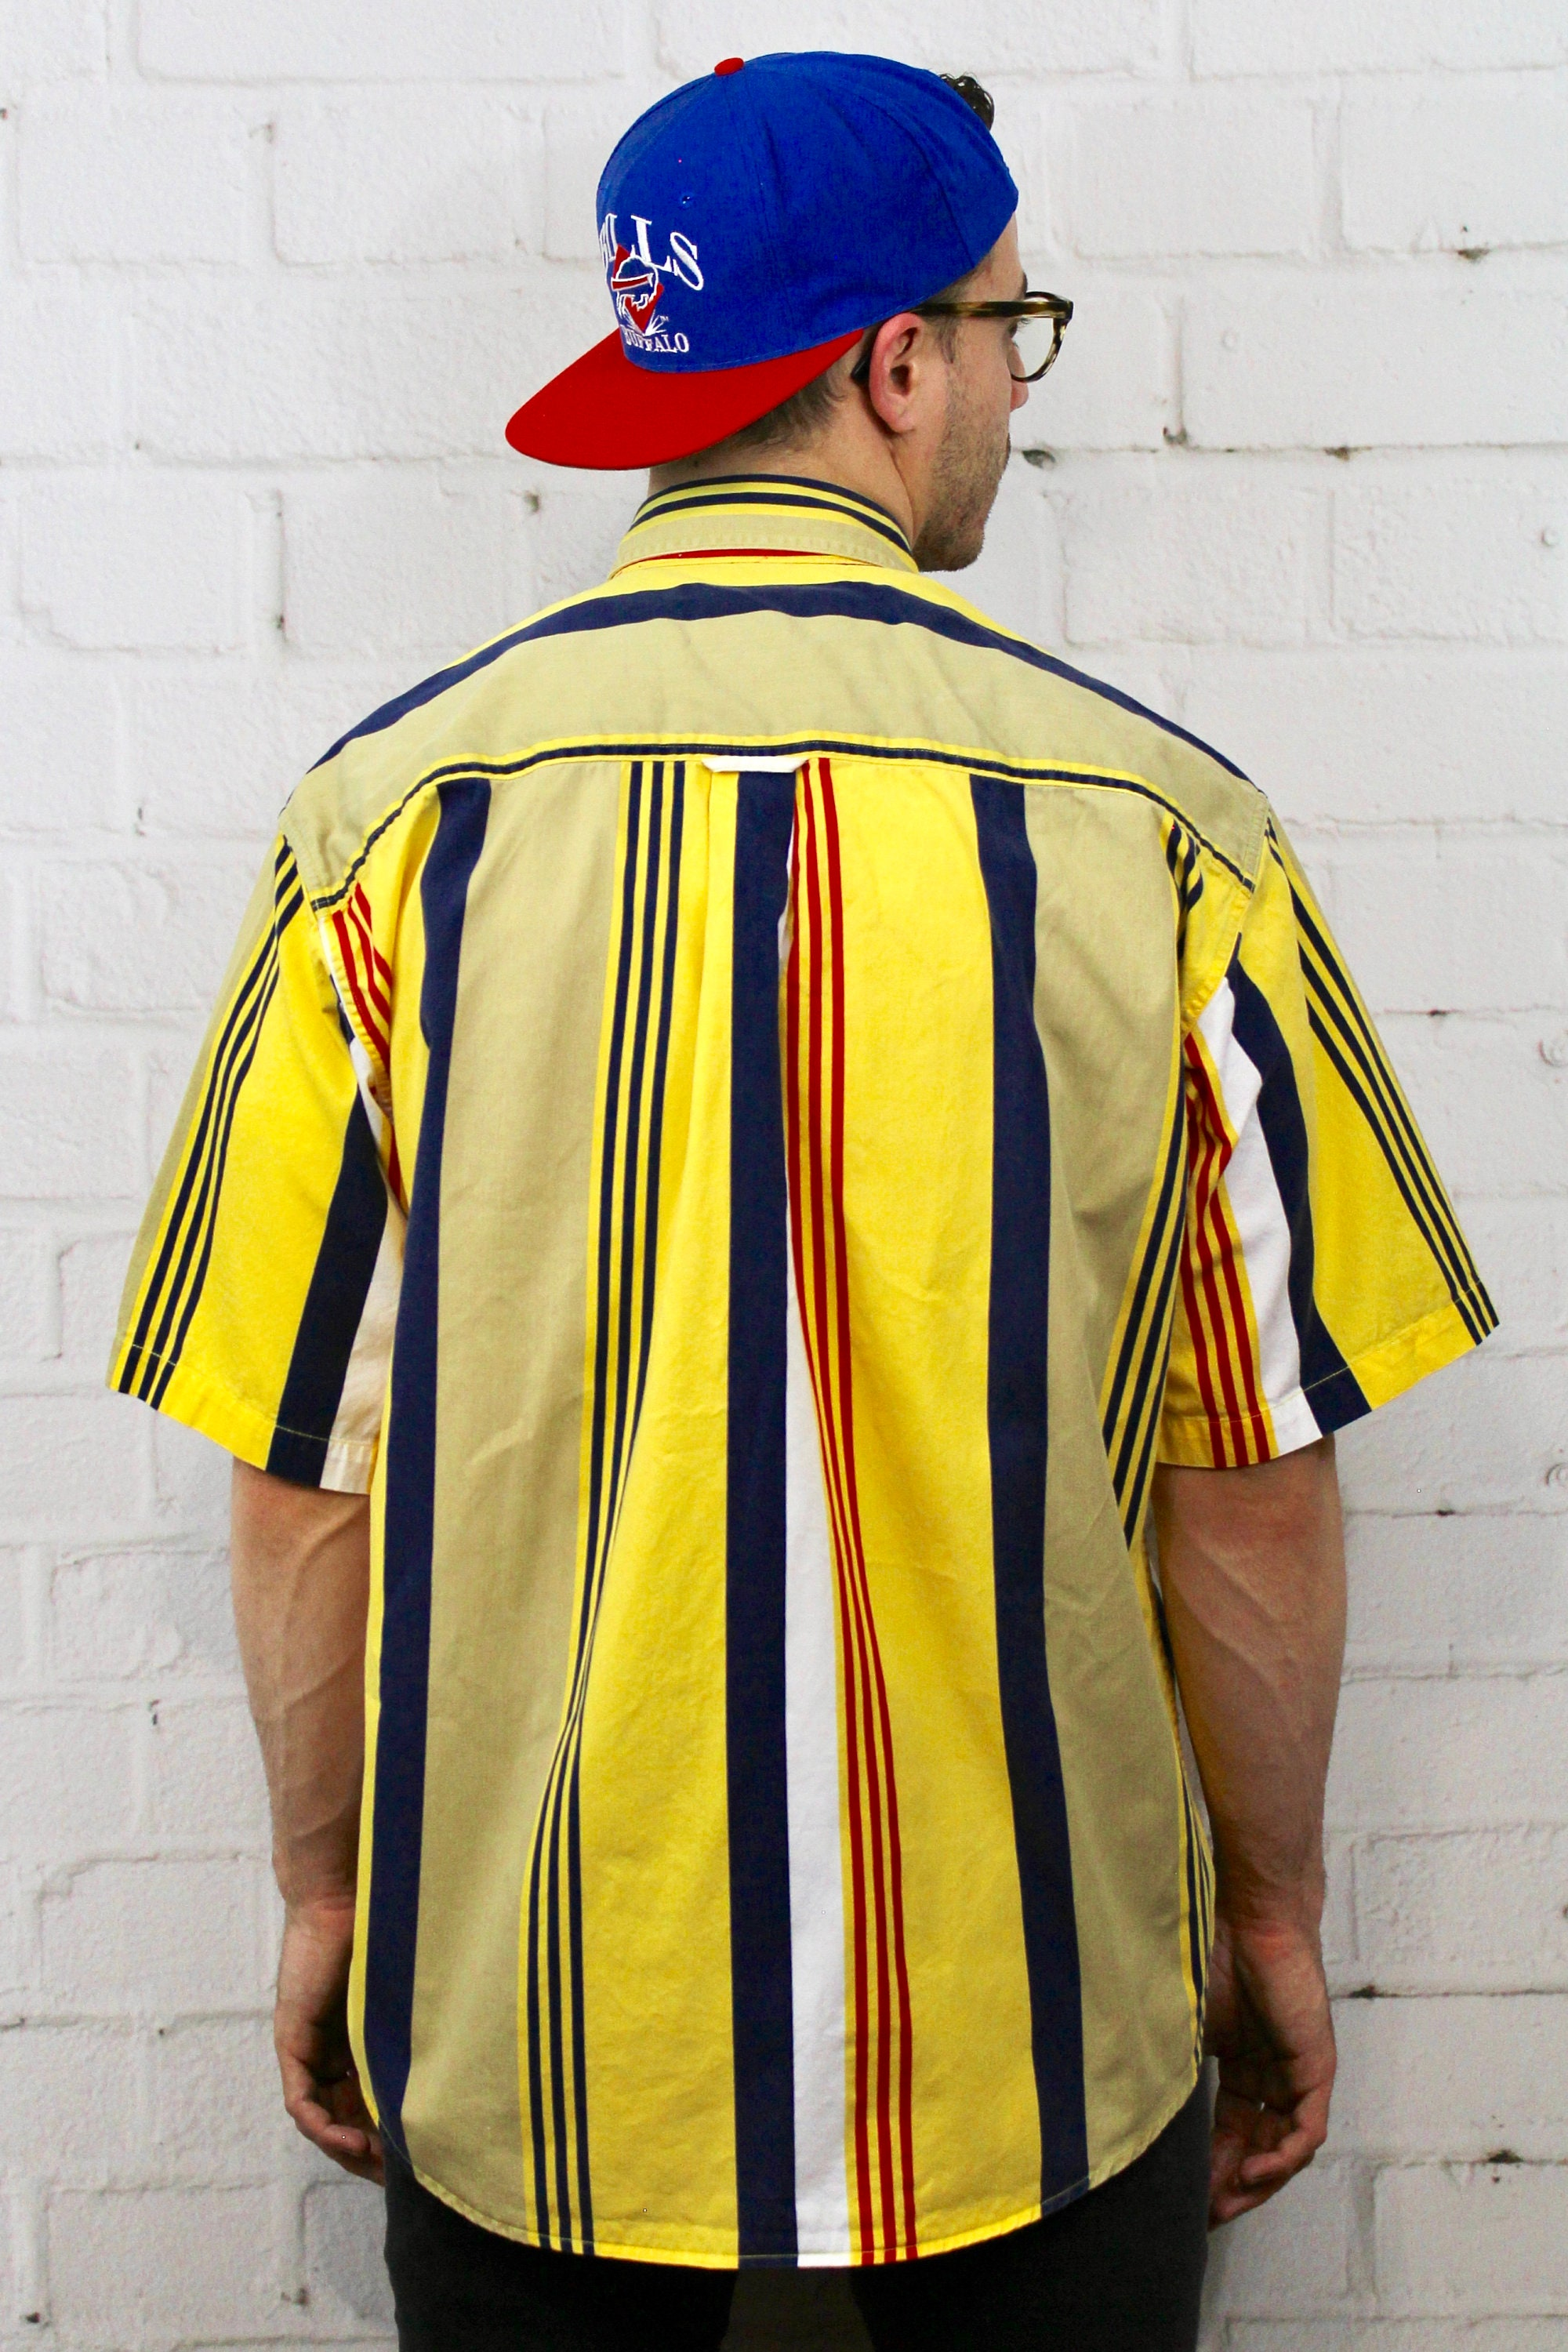 237f7daf1f44 Basic Editions Vintage Vertical Stripe Shirt